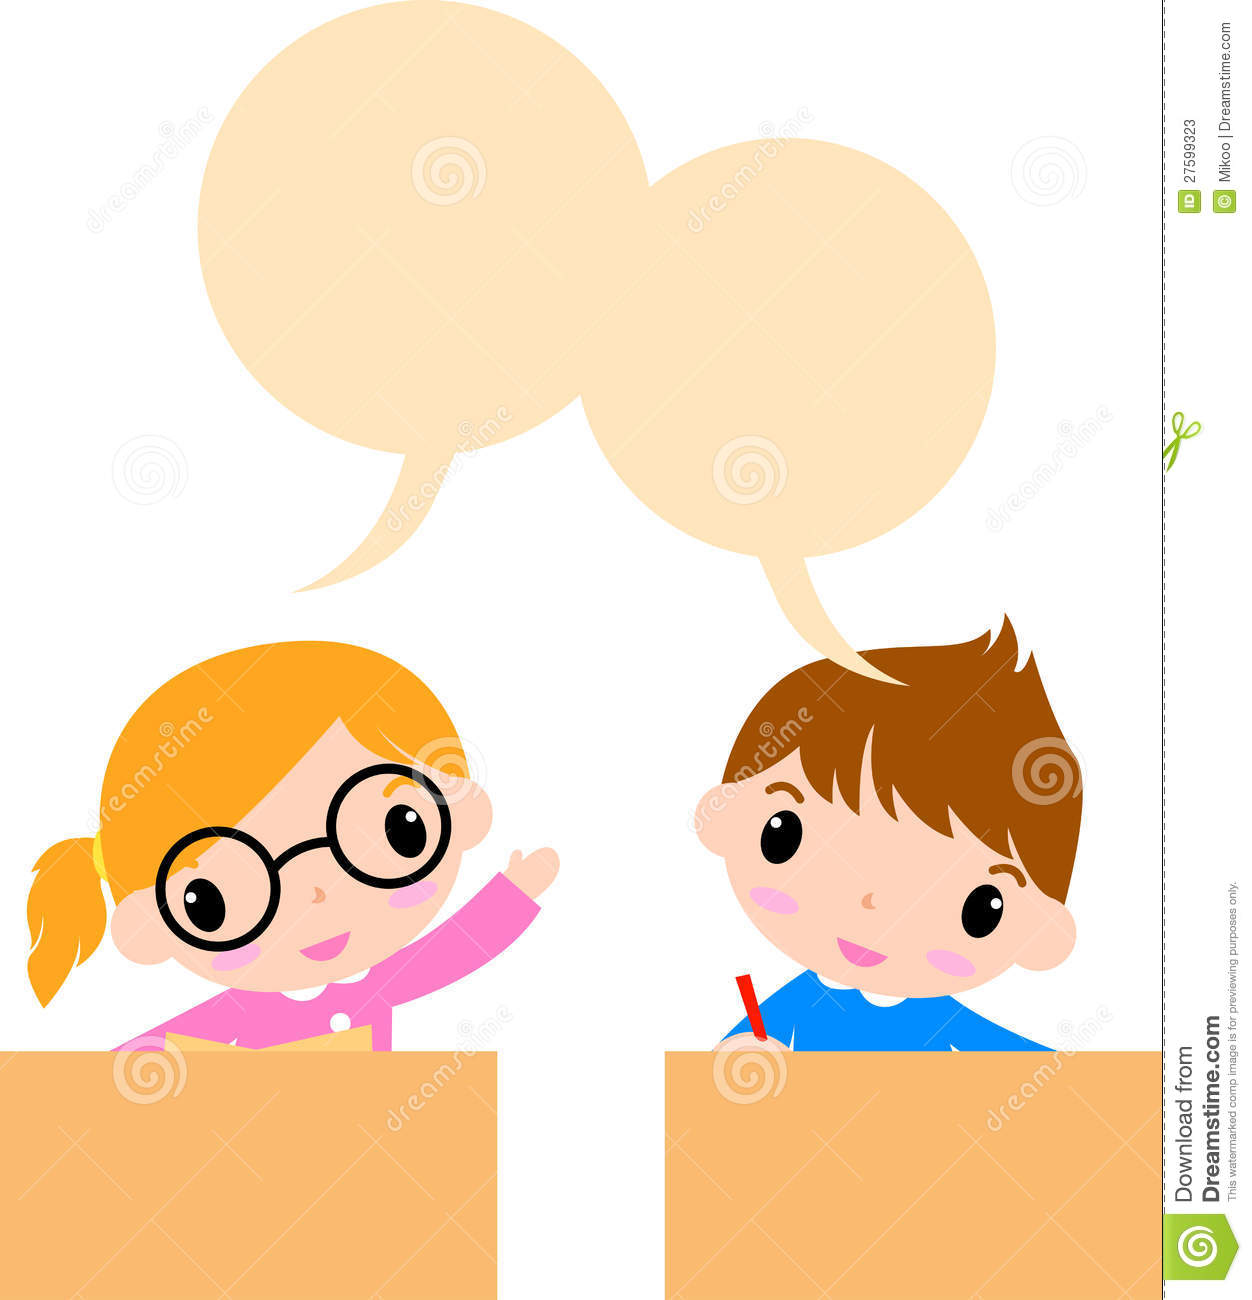 hight resolution of illustration of two kids talking mr no pr no 0 358 0no talking clipart kids